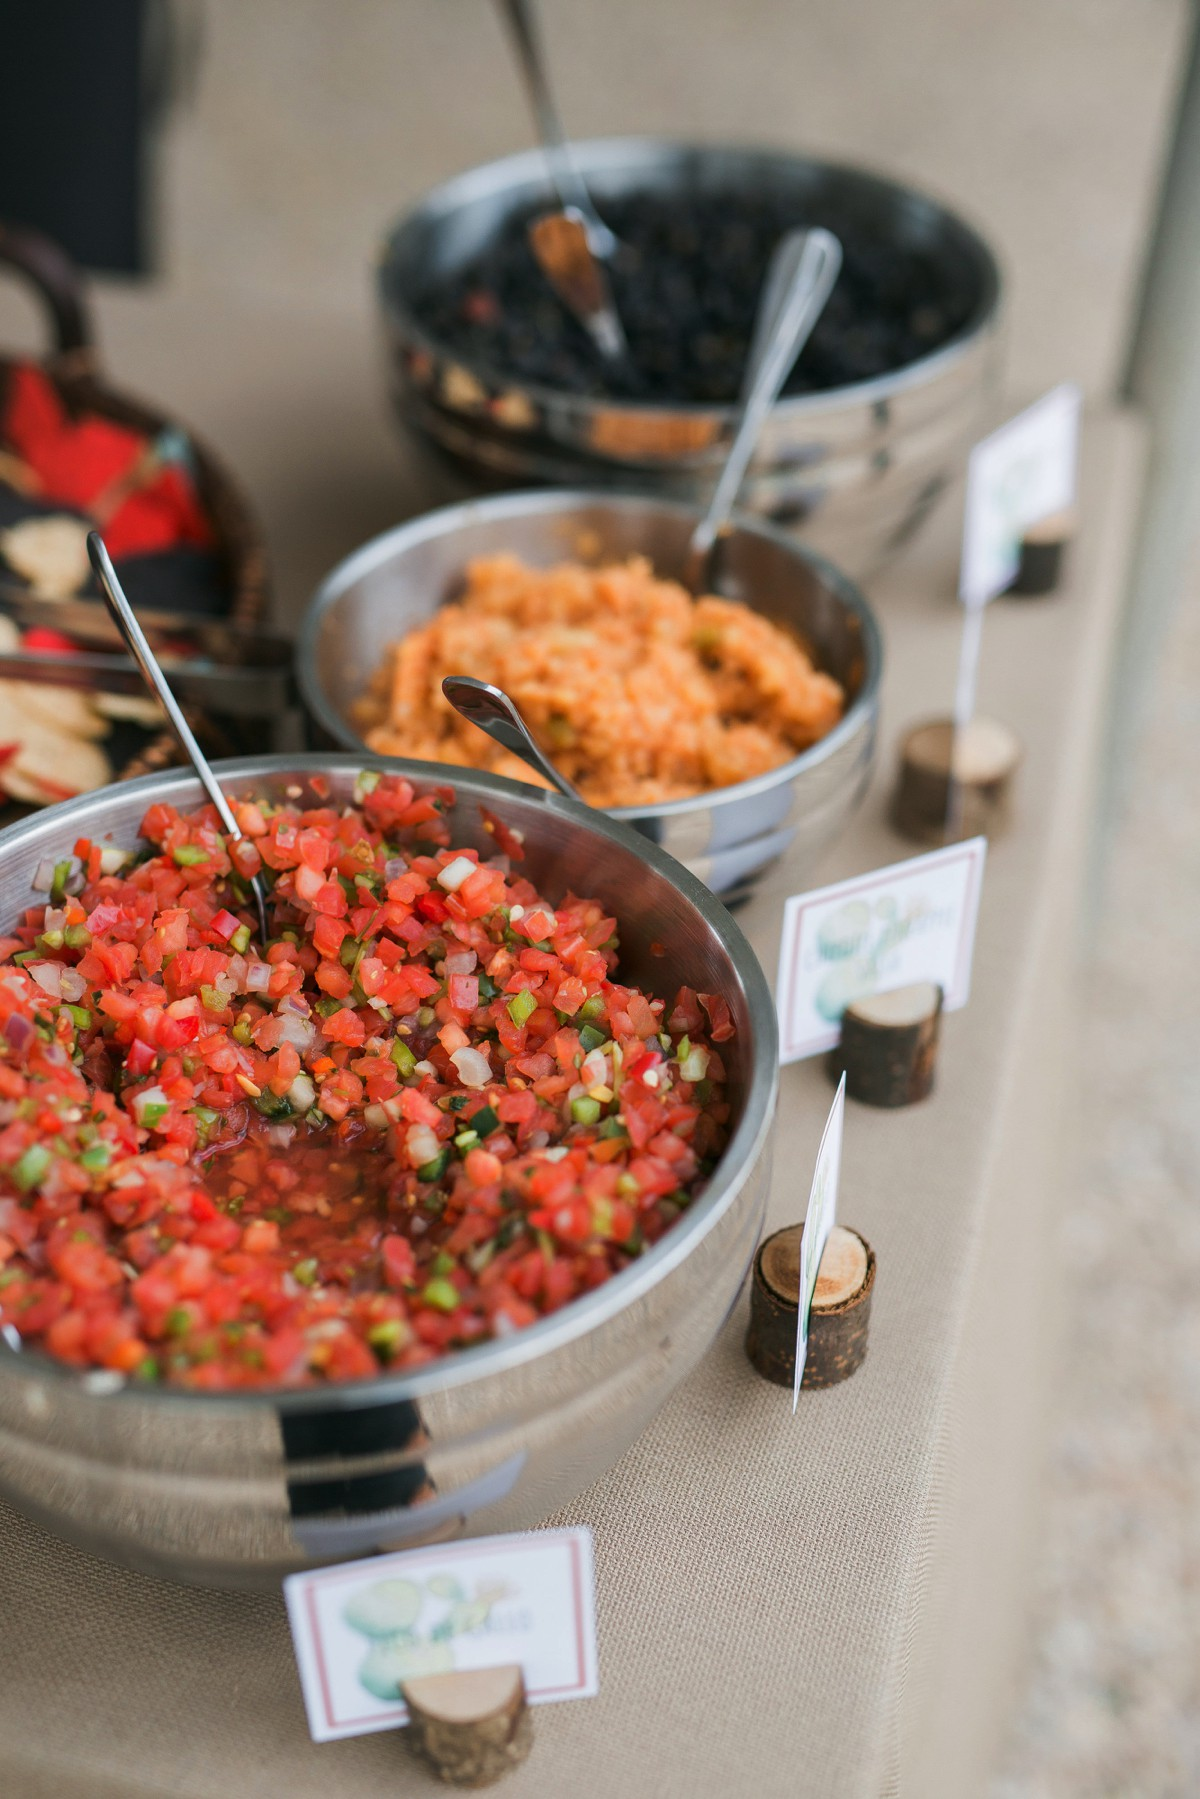 salsa and dips at an event by stoneridge.jpg